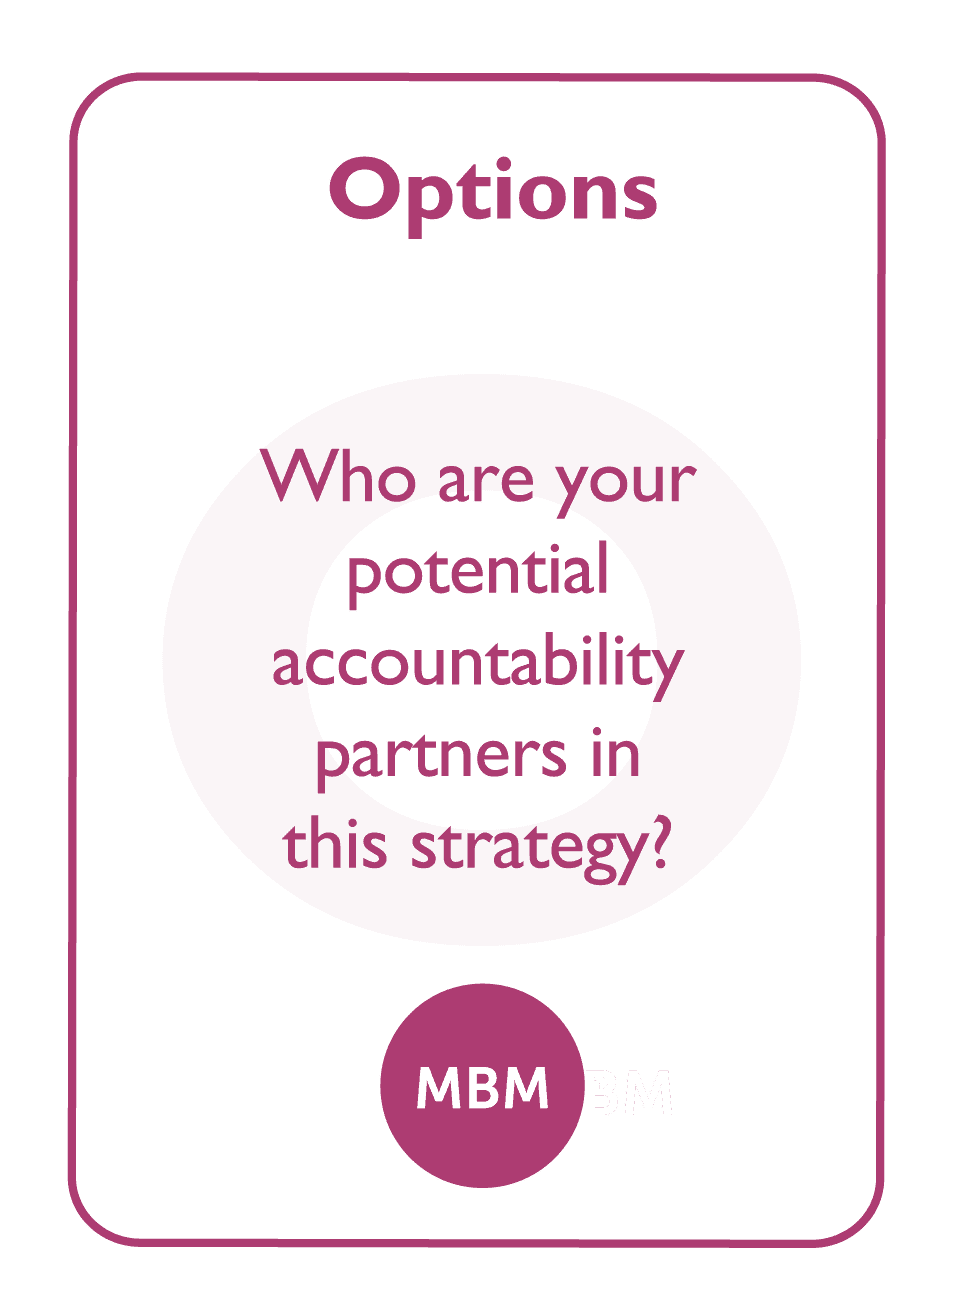 Coaching card titled Options